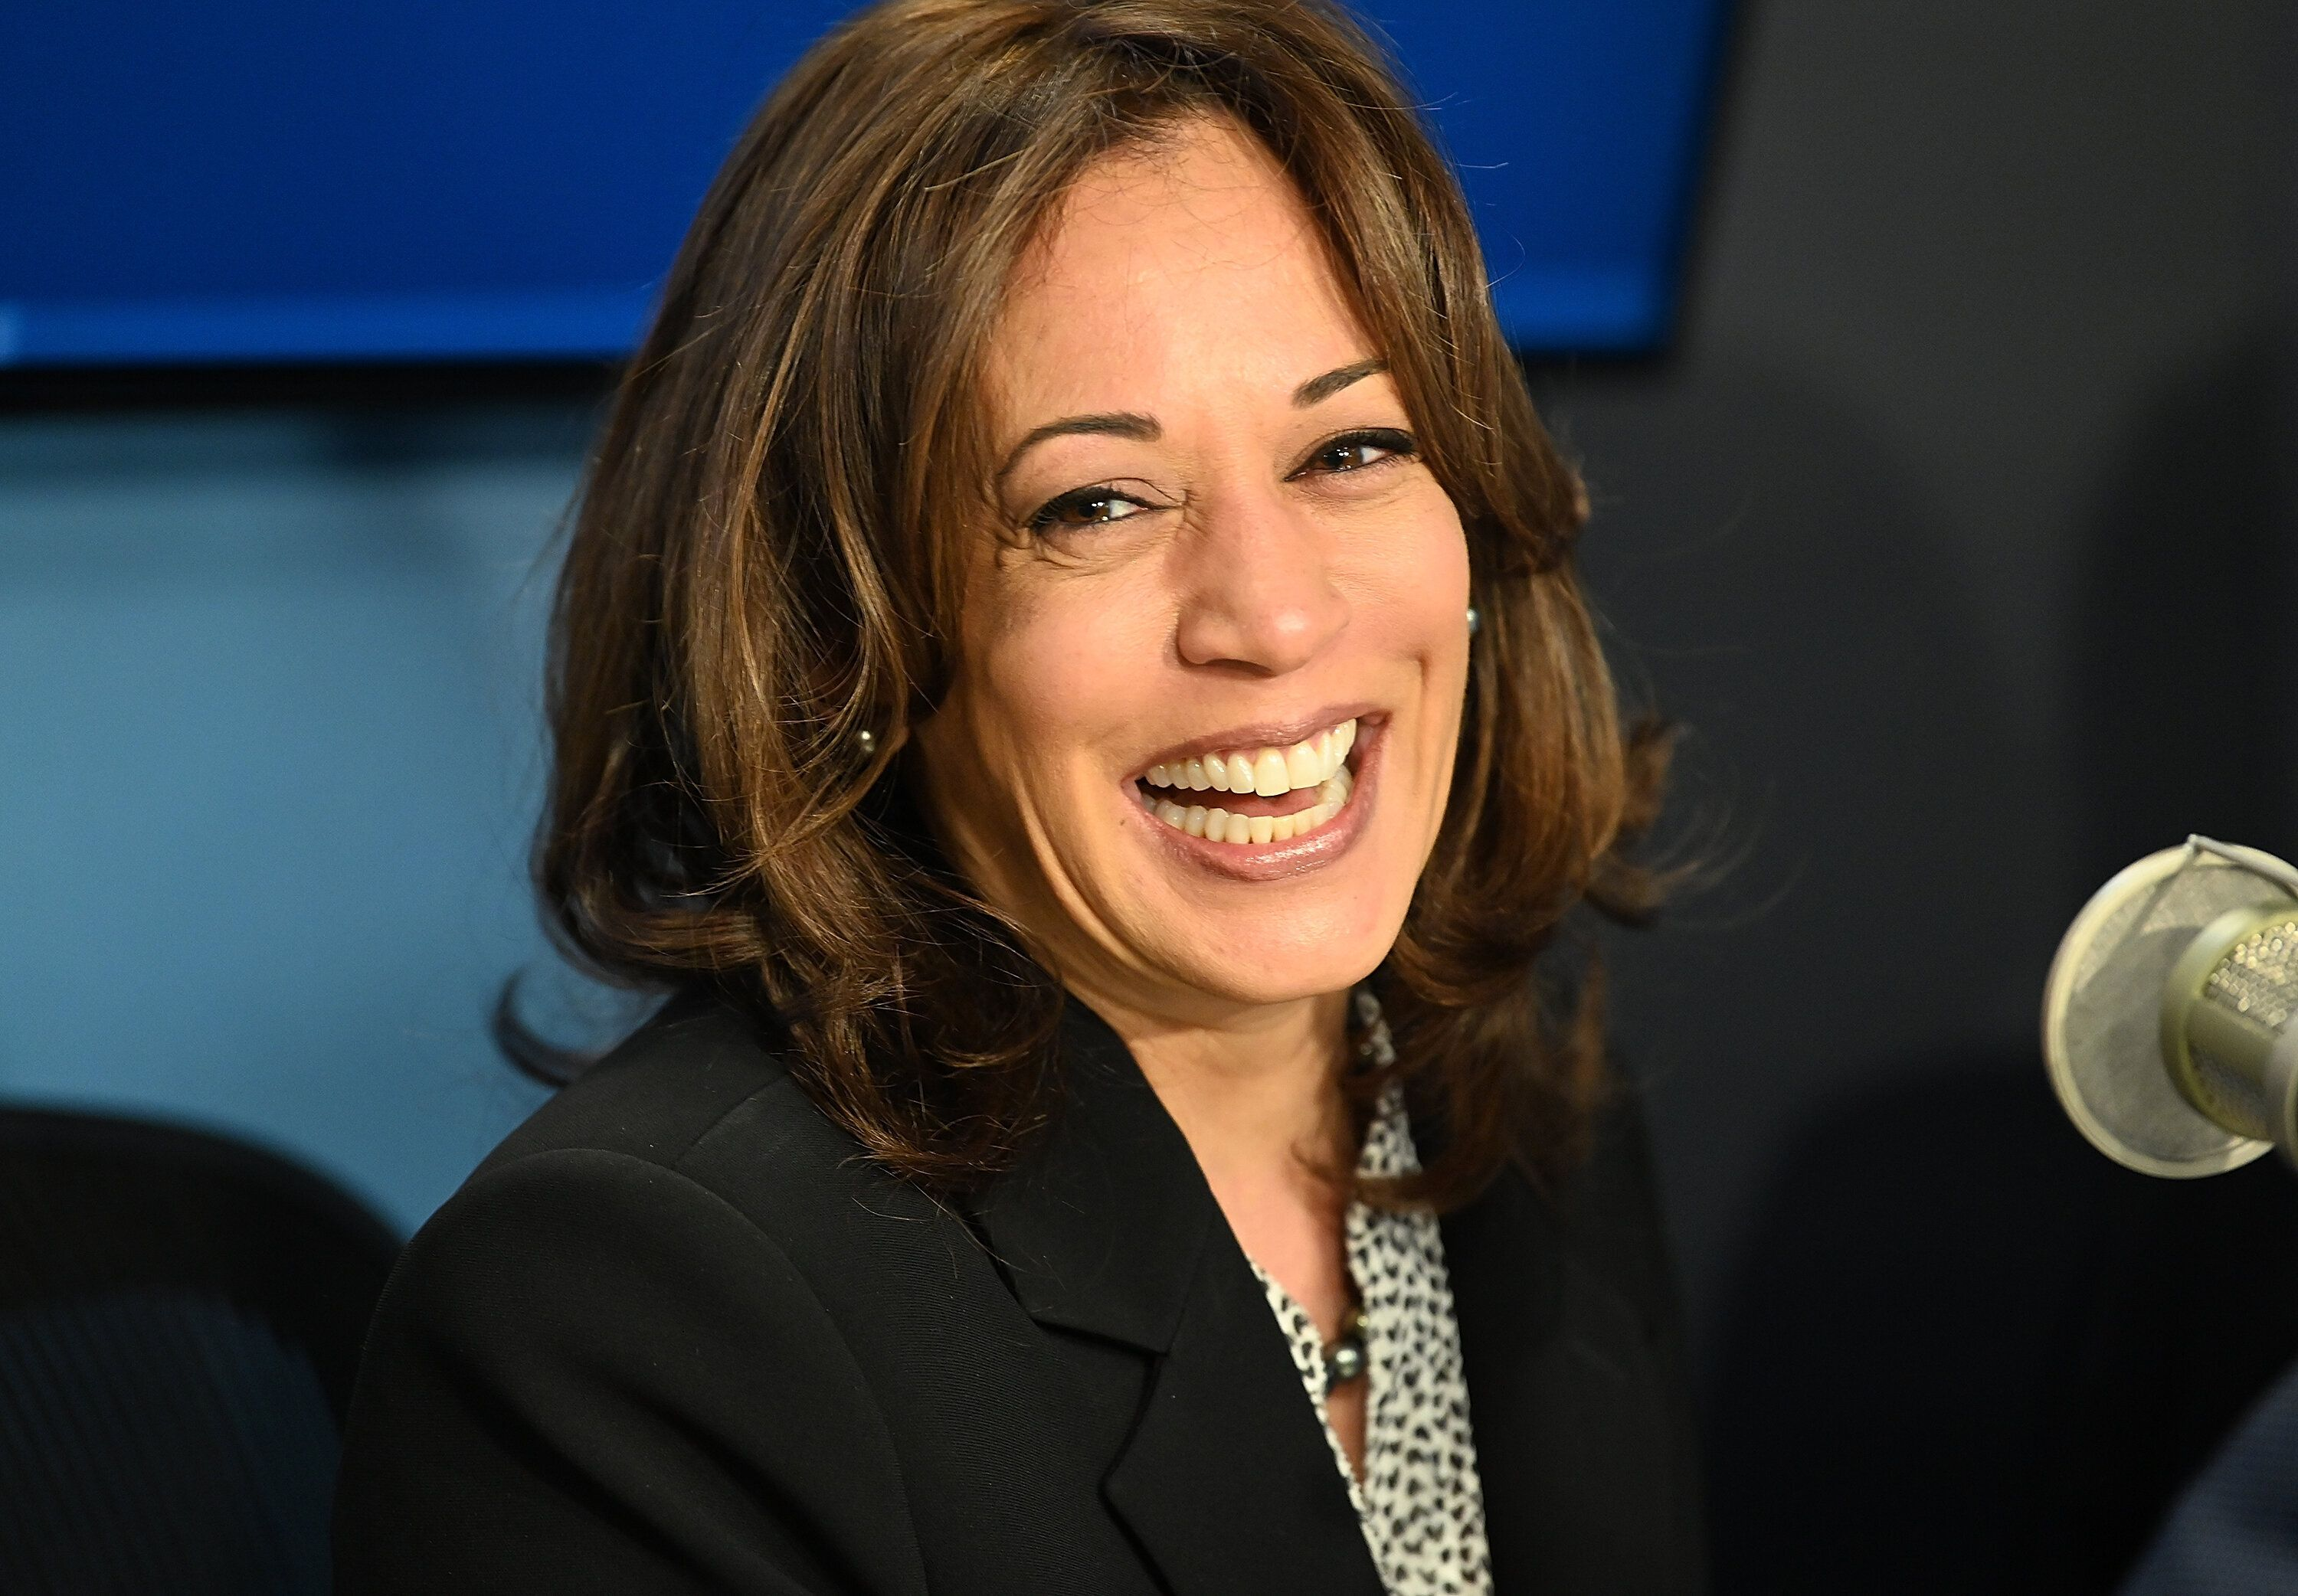 Kamala Harris Opens Up About Being A Stepmom In Personal